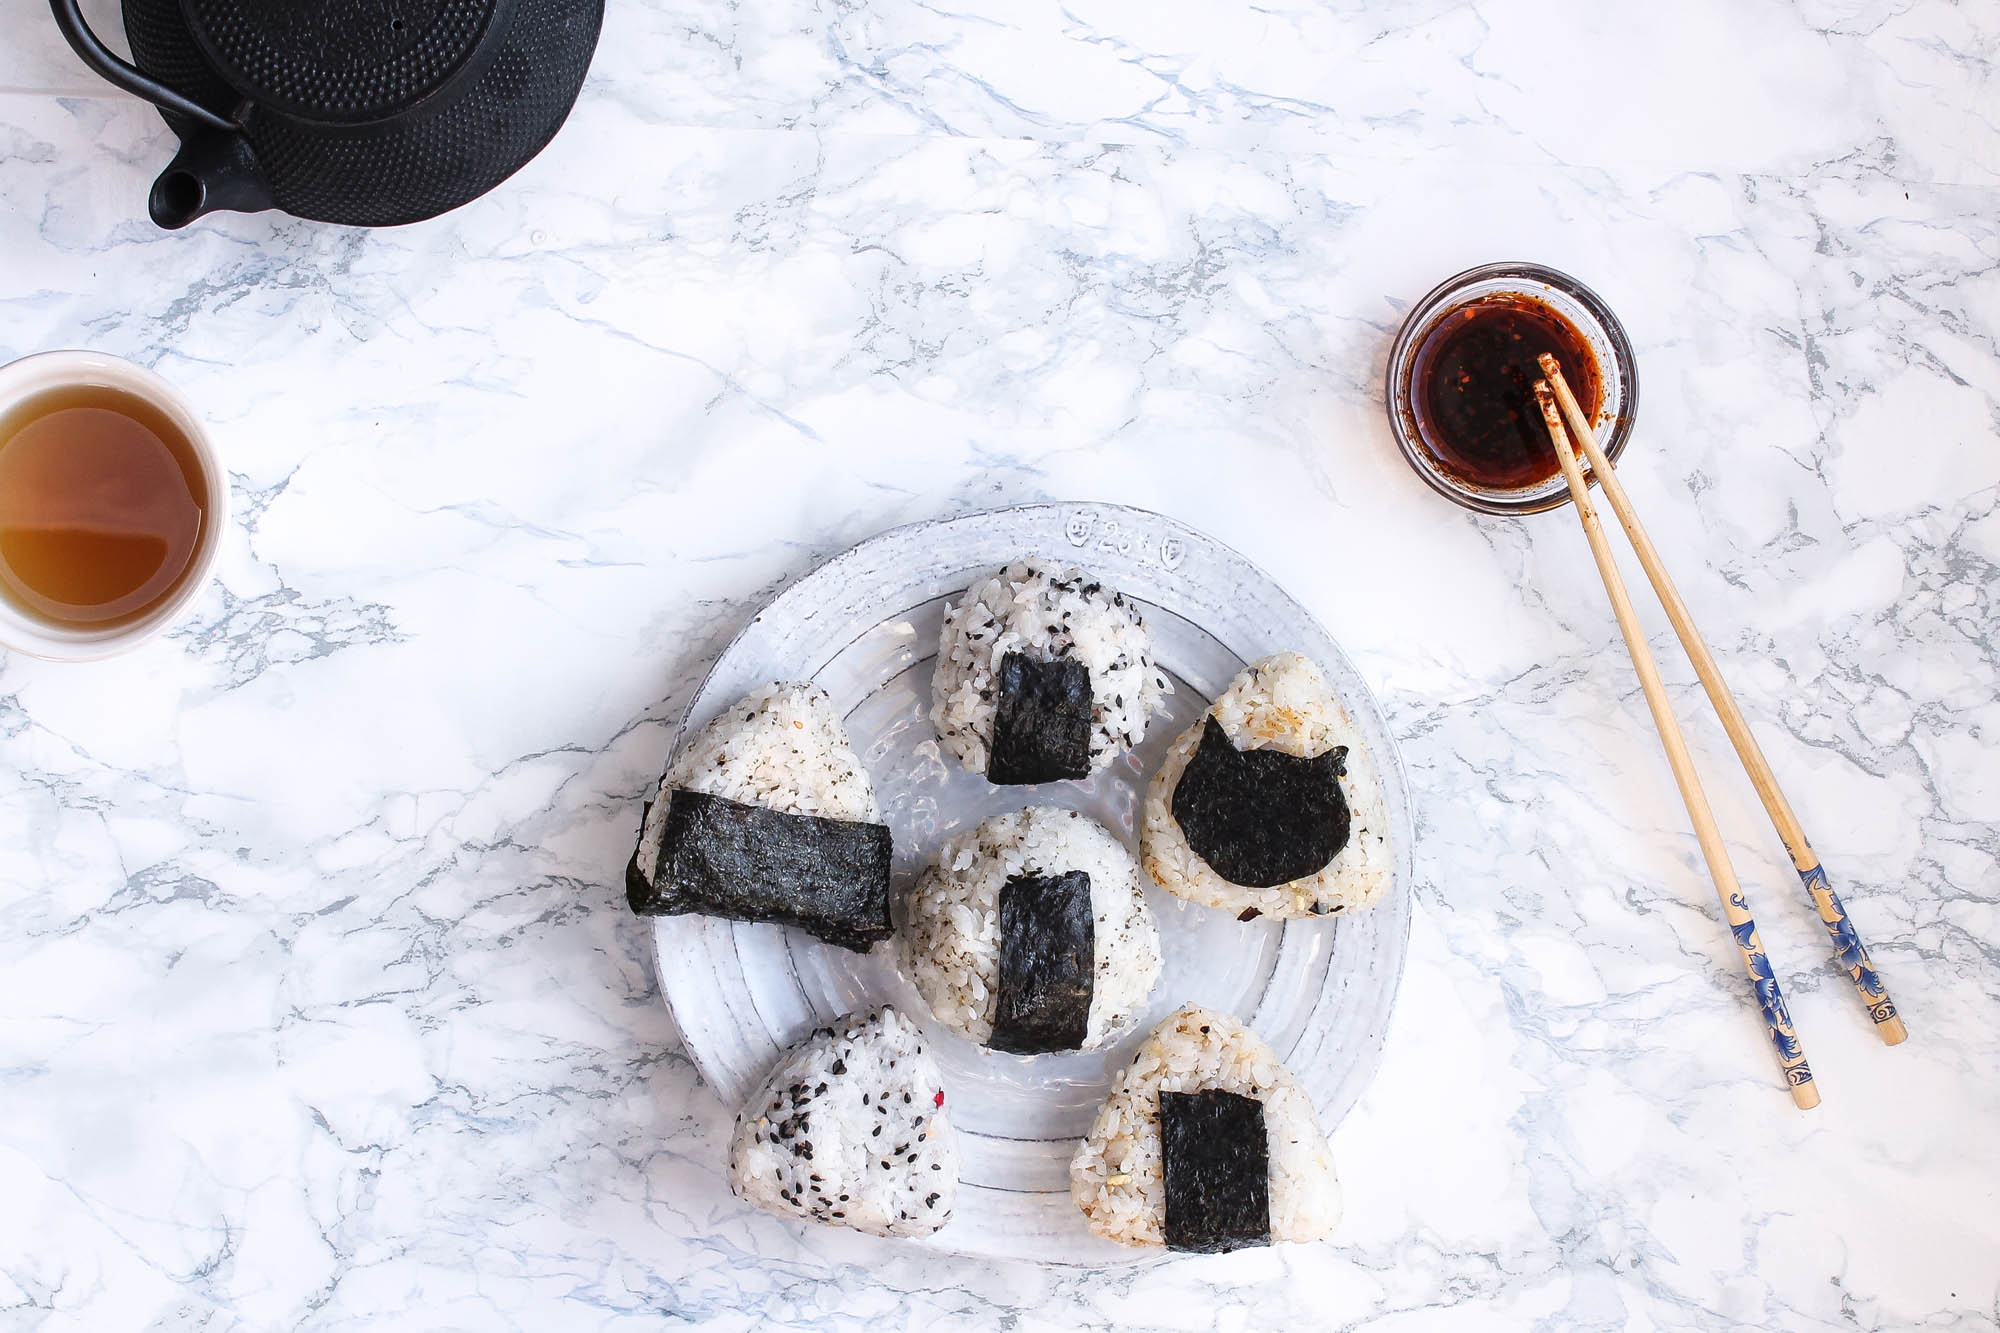 How To Make Onigiri (Japanese Rice Balls) || These delicious and simple snacks are easy to make and fun to shape and decorate. Made with sushi rice and filled with many different toppings like cucumber, avocado, tuna, + umeboshi (pickled plum). gluten free, dairy free, sugar free, plant based. || creamandhoney.ca